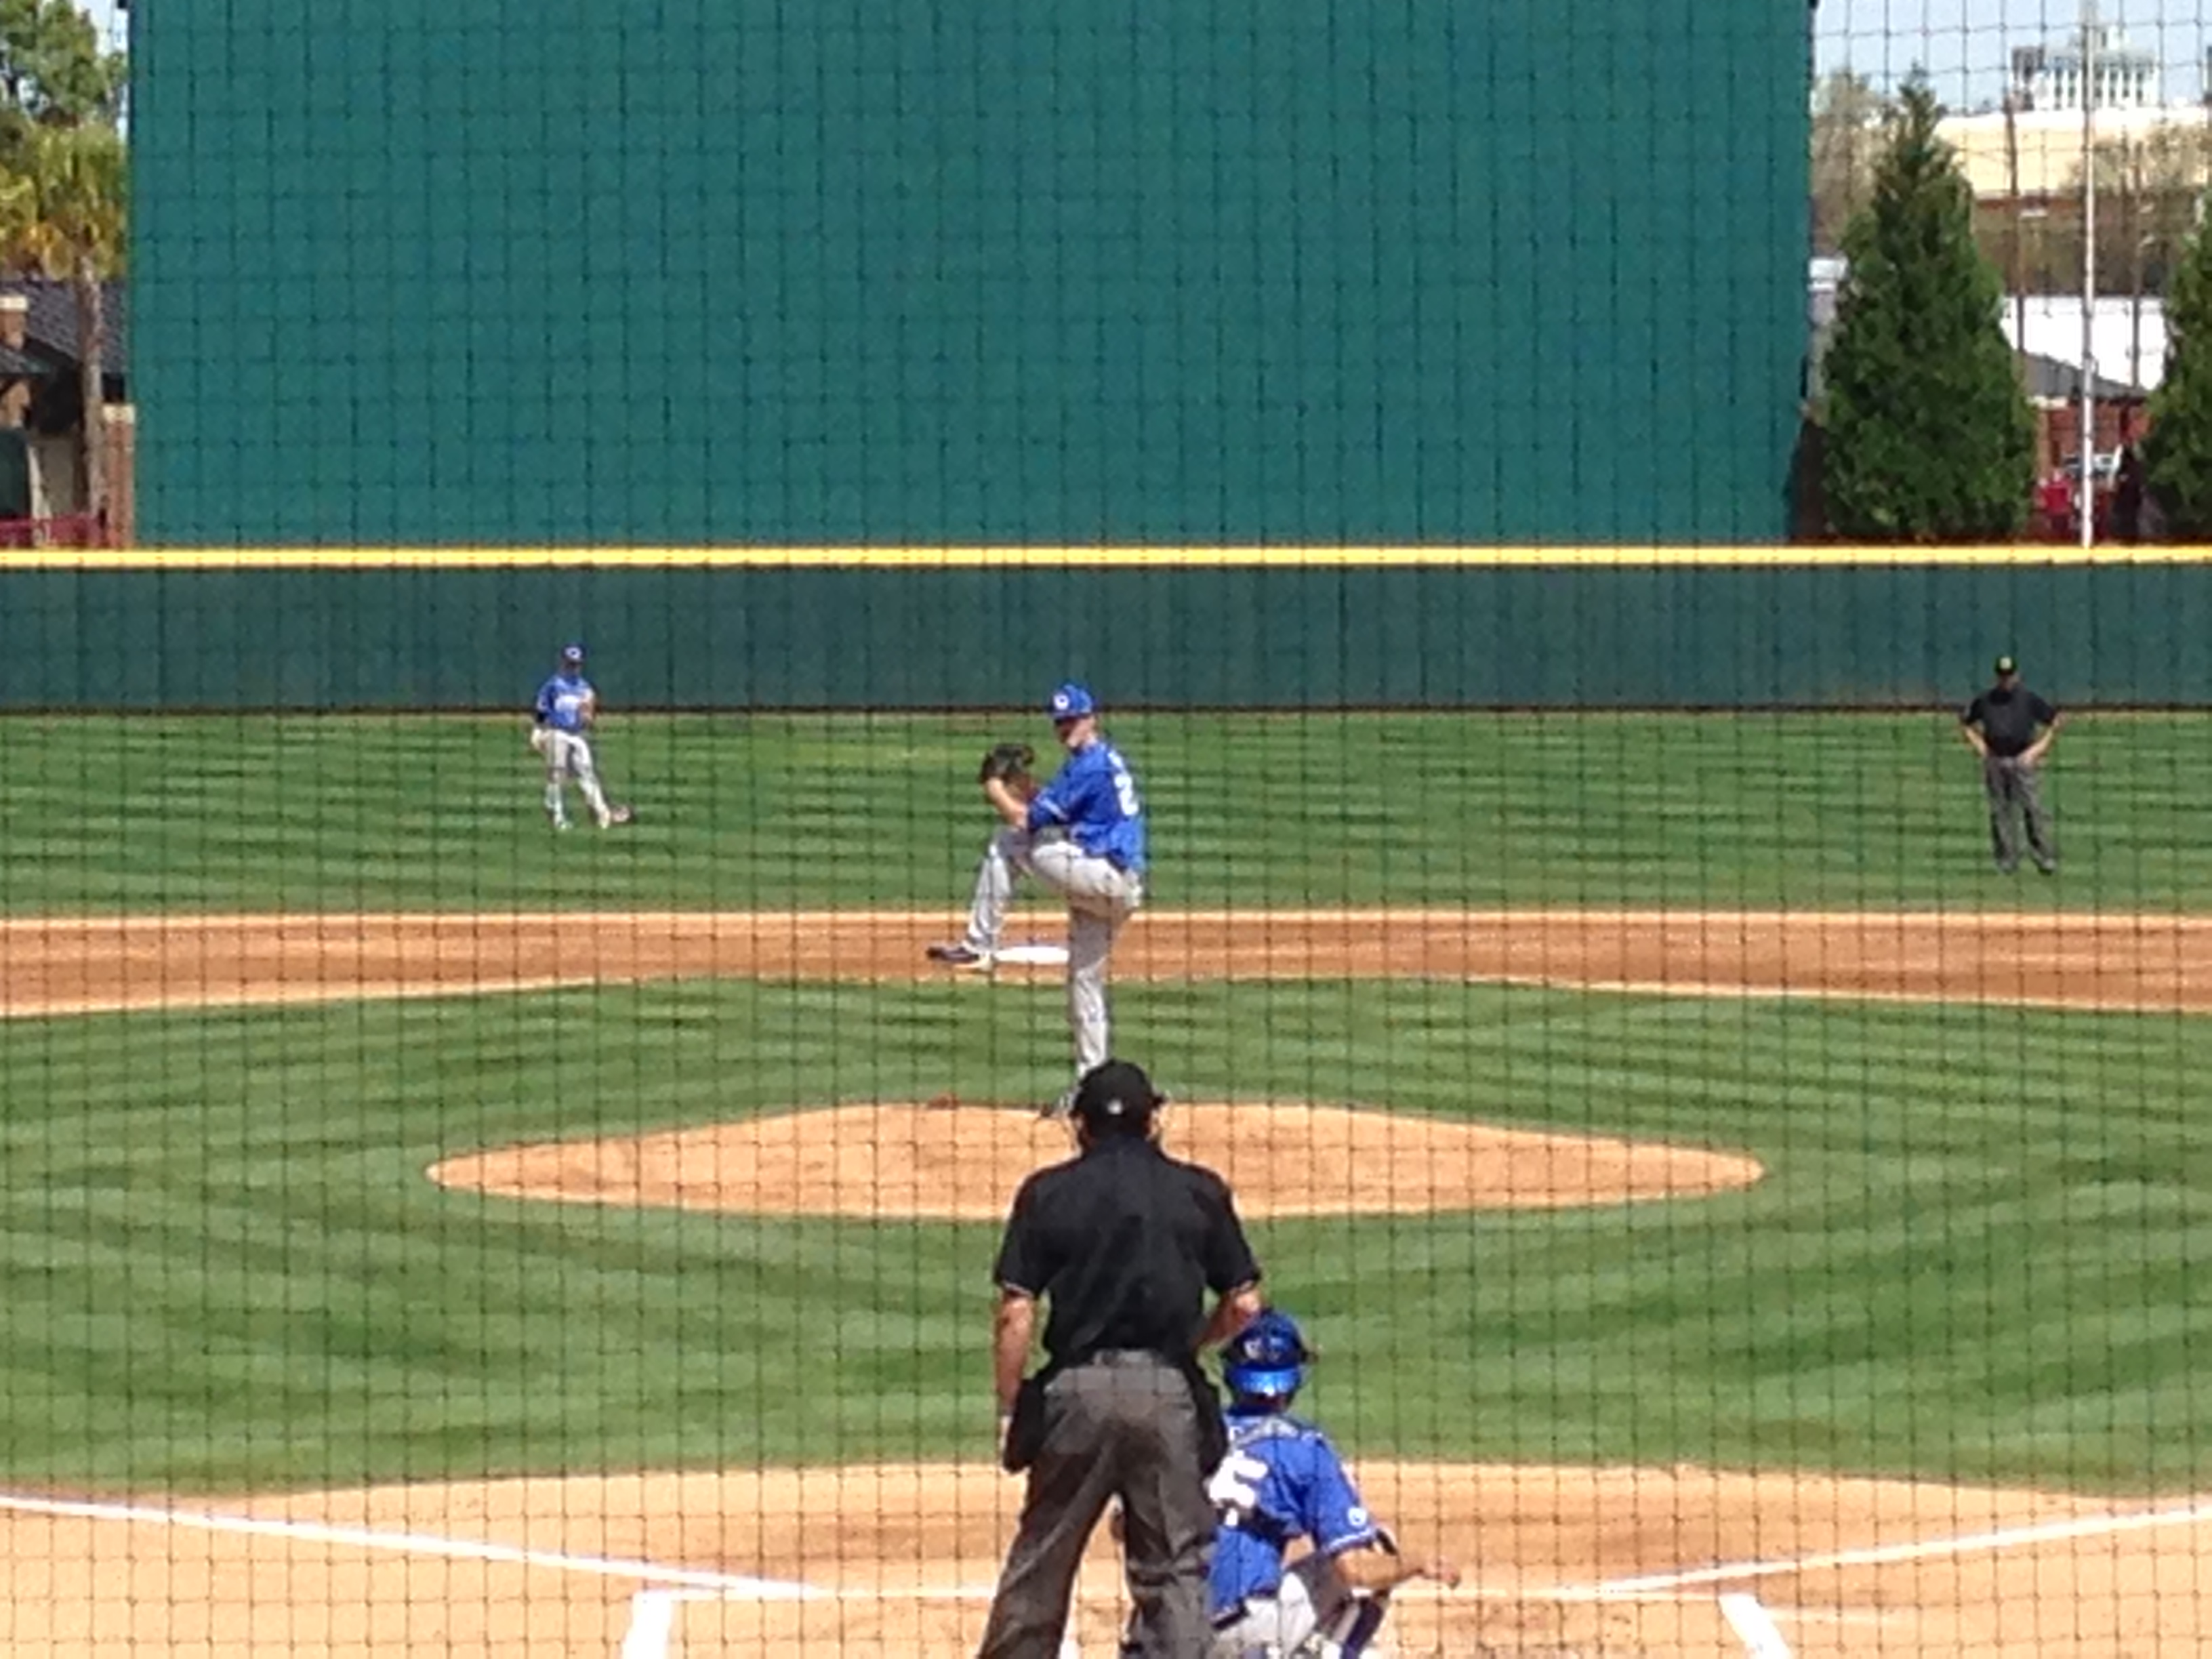 Kentucky RHP Kyle Cody prepares to deliver pitch during warmup